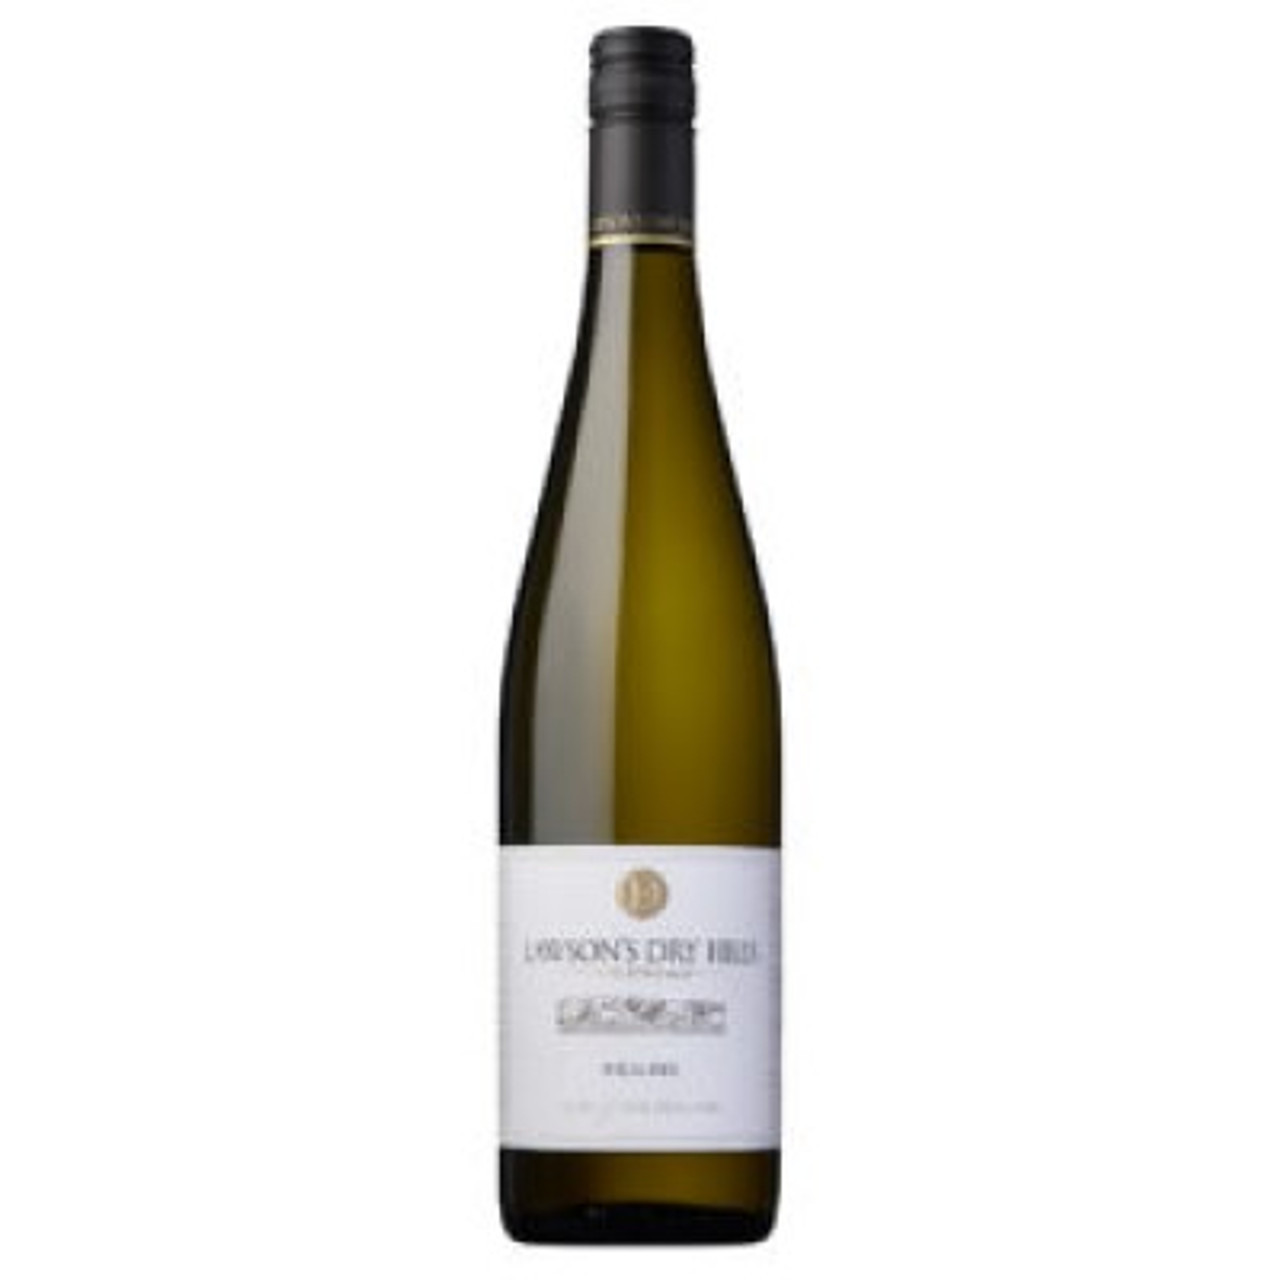 Lawsons Dry Hills Riesling 2015